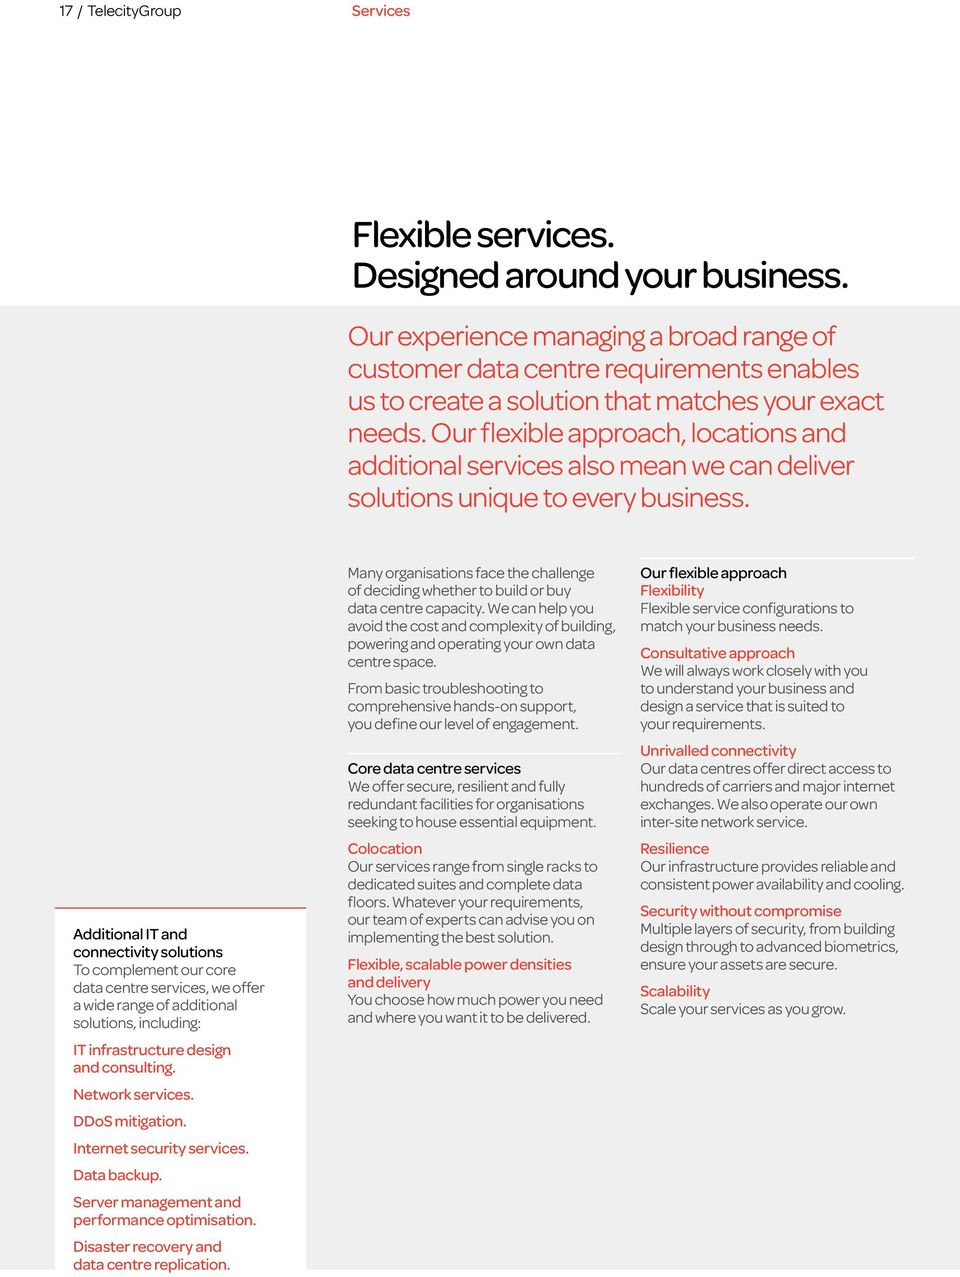 Our flexible approach, locations and additional services also mean we can deliver solutions unique to every business.